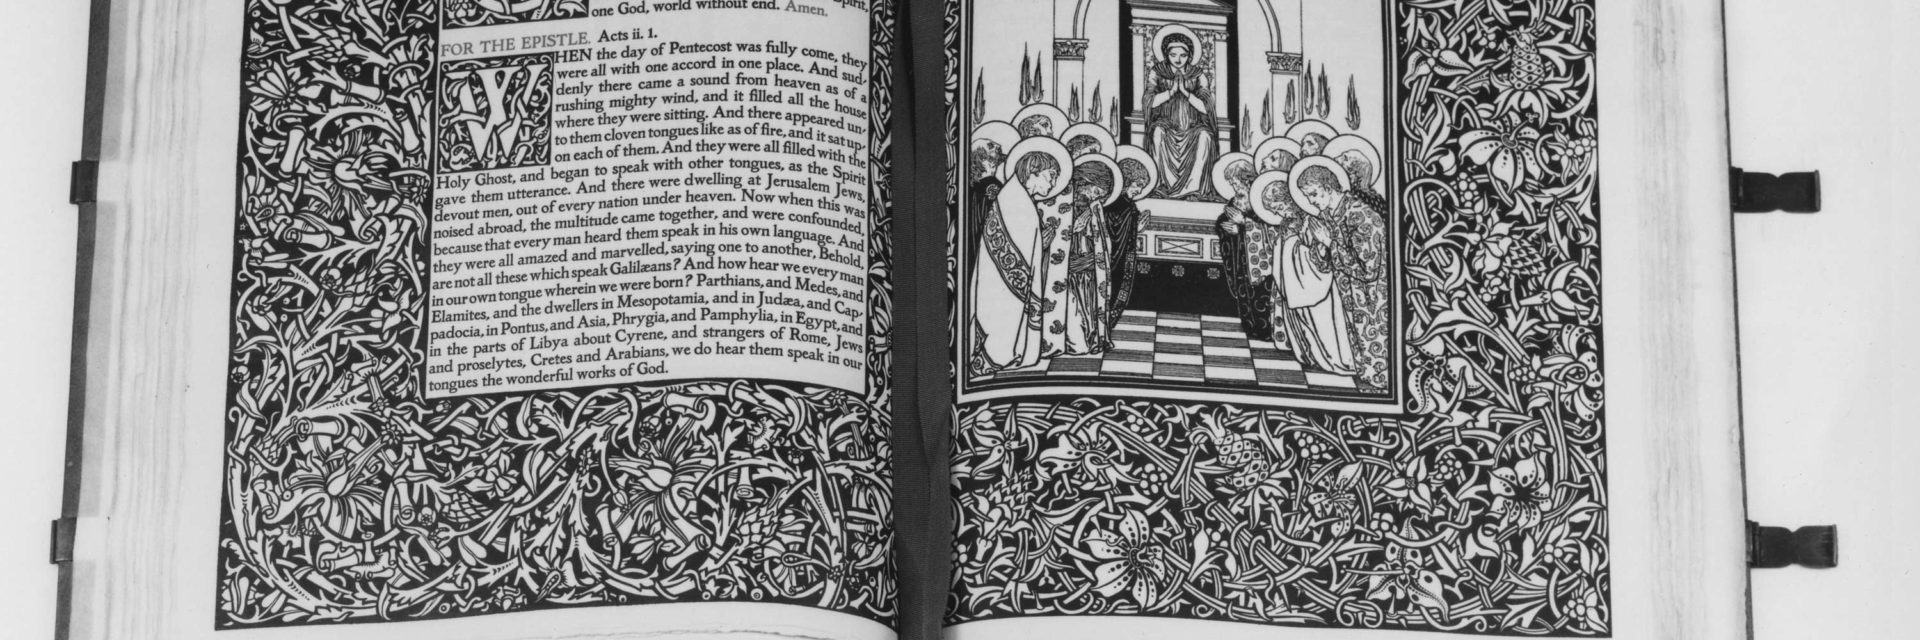 Pages from the Altar Book, published by Merrymount Press